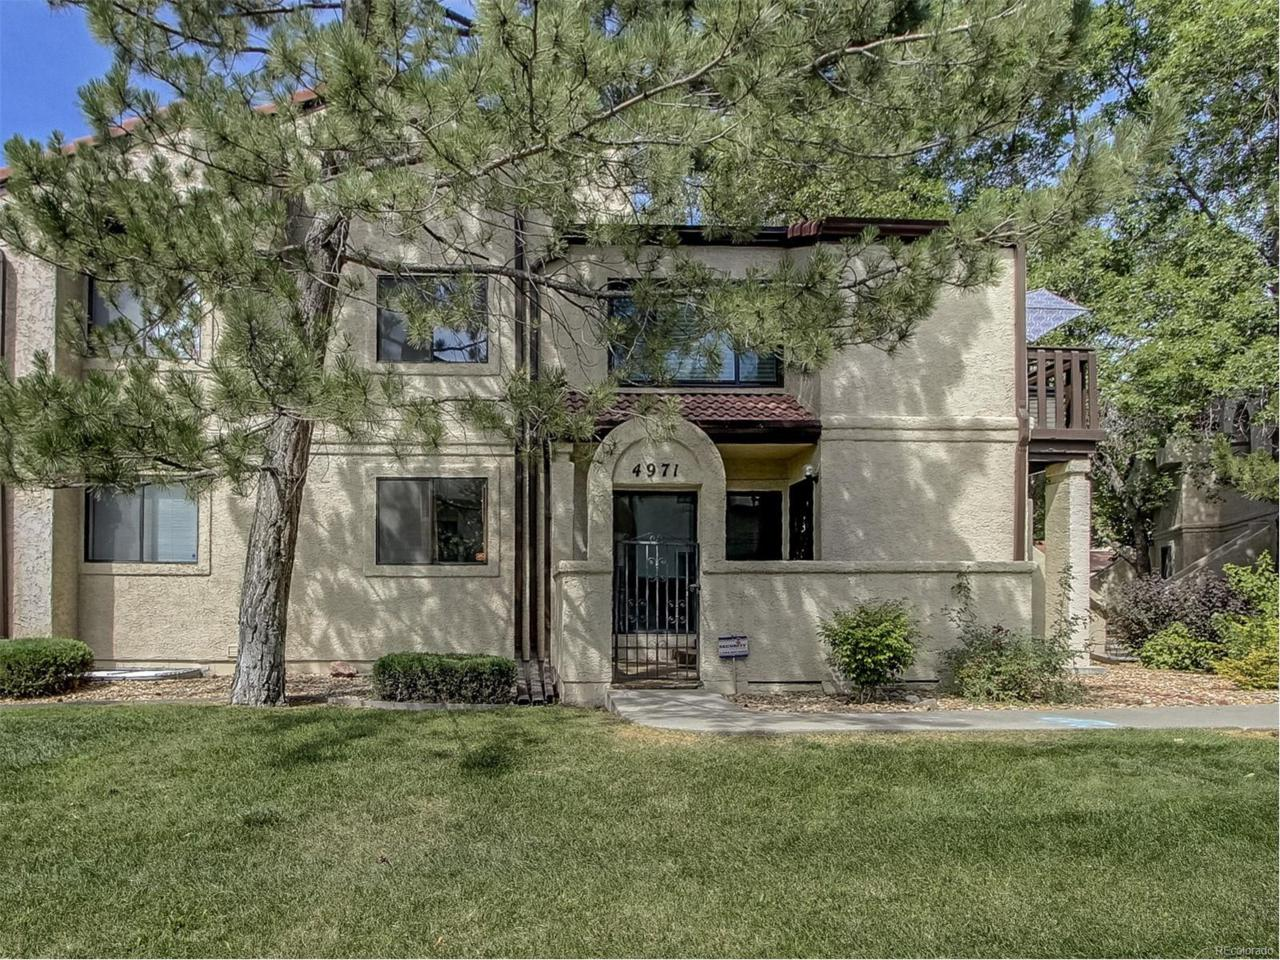 4971 W 73rd Avenue, Westminster, CO 80030 (MLS #8148582) :: 8z Real Estate